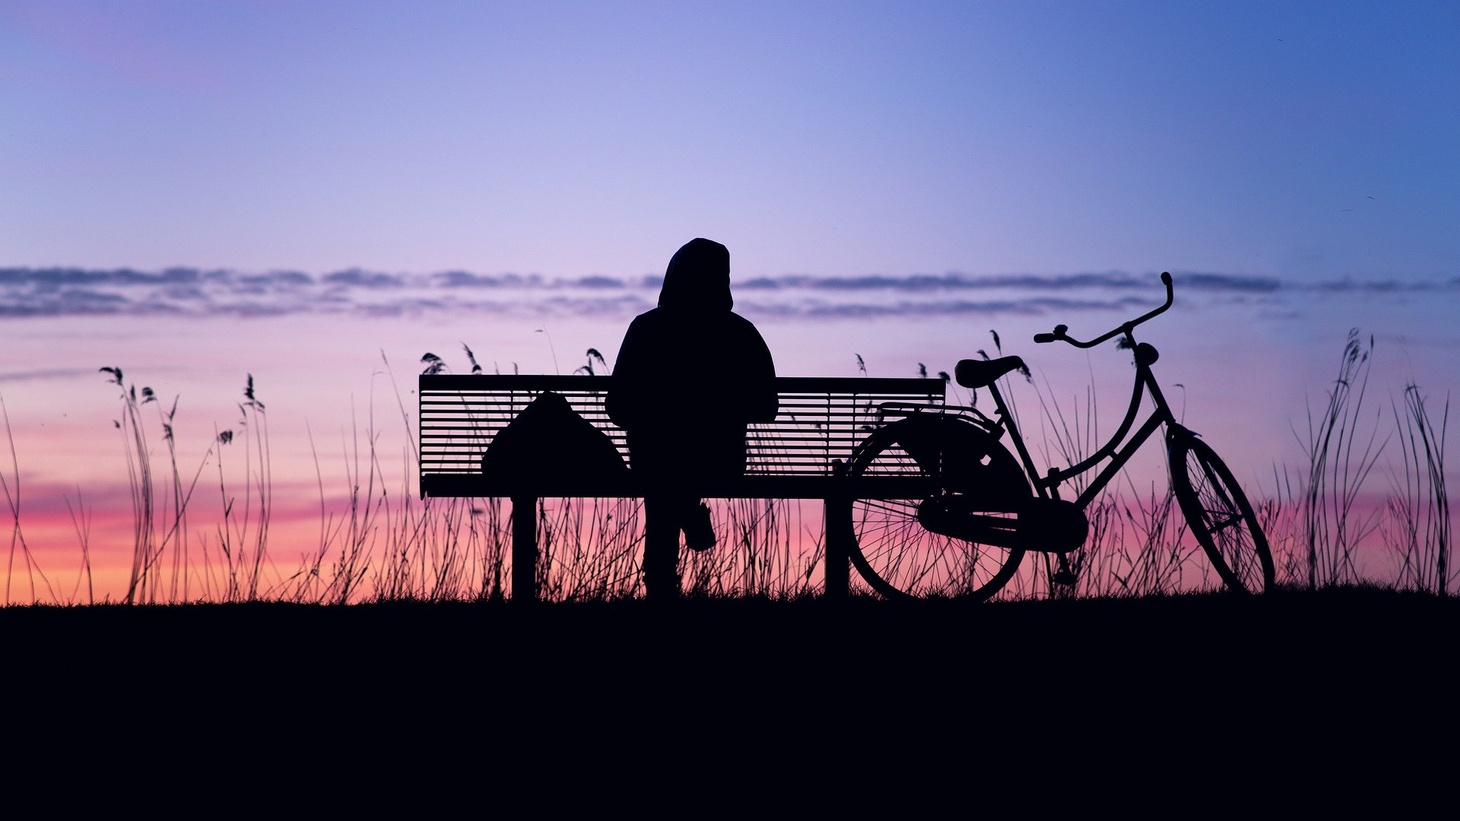 A person sits alone on a bench. A new project called Dear Loneliness collects letters, artwork, and social media posts about how people are experiencing loneliness around the world.